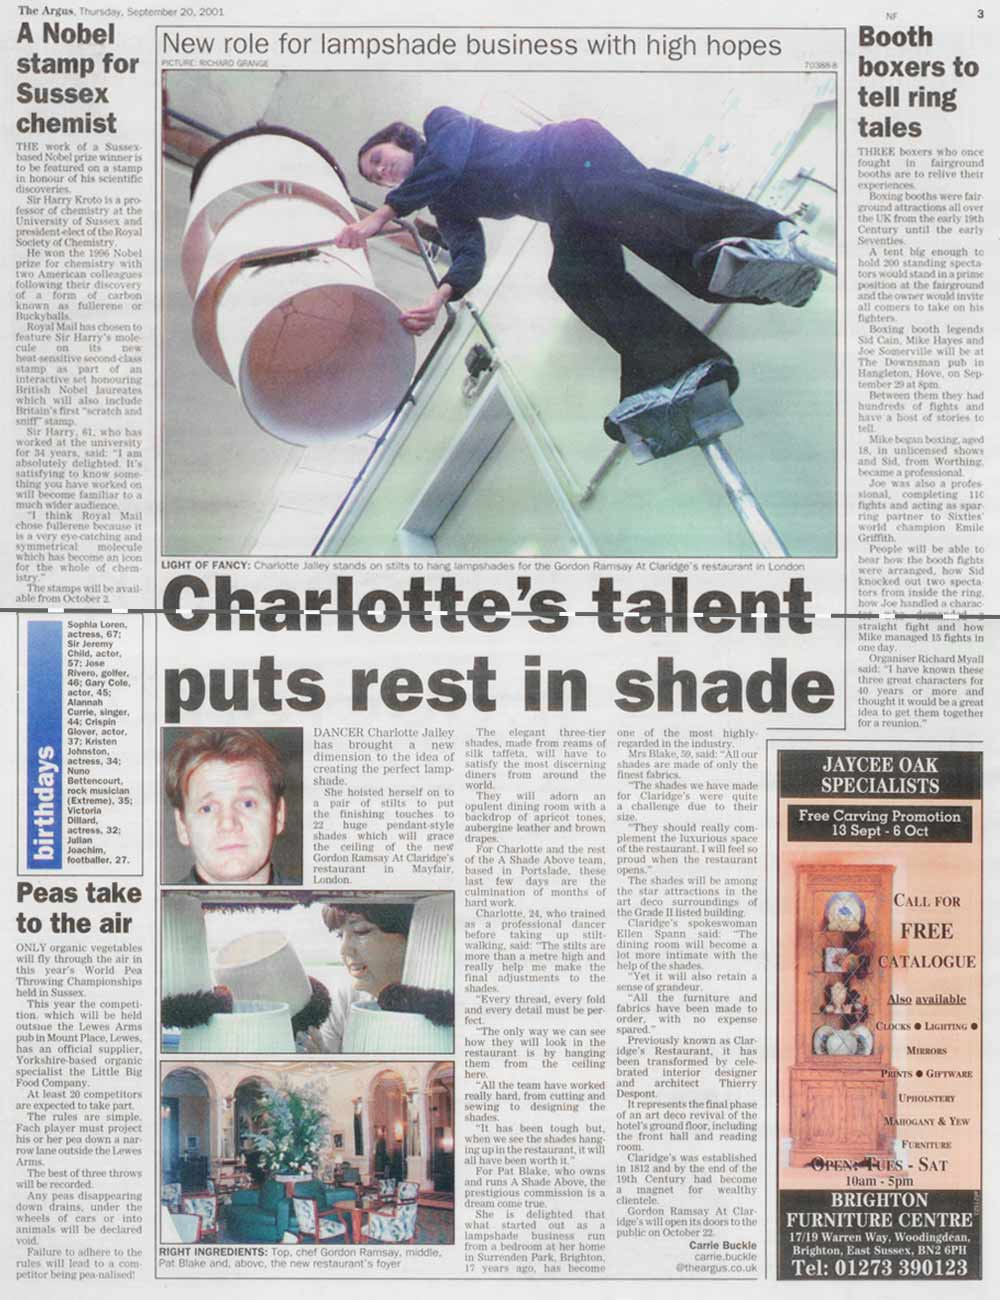 The Argus, Gordon Ramsay at Claridge's, September 2001